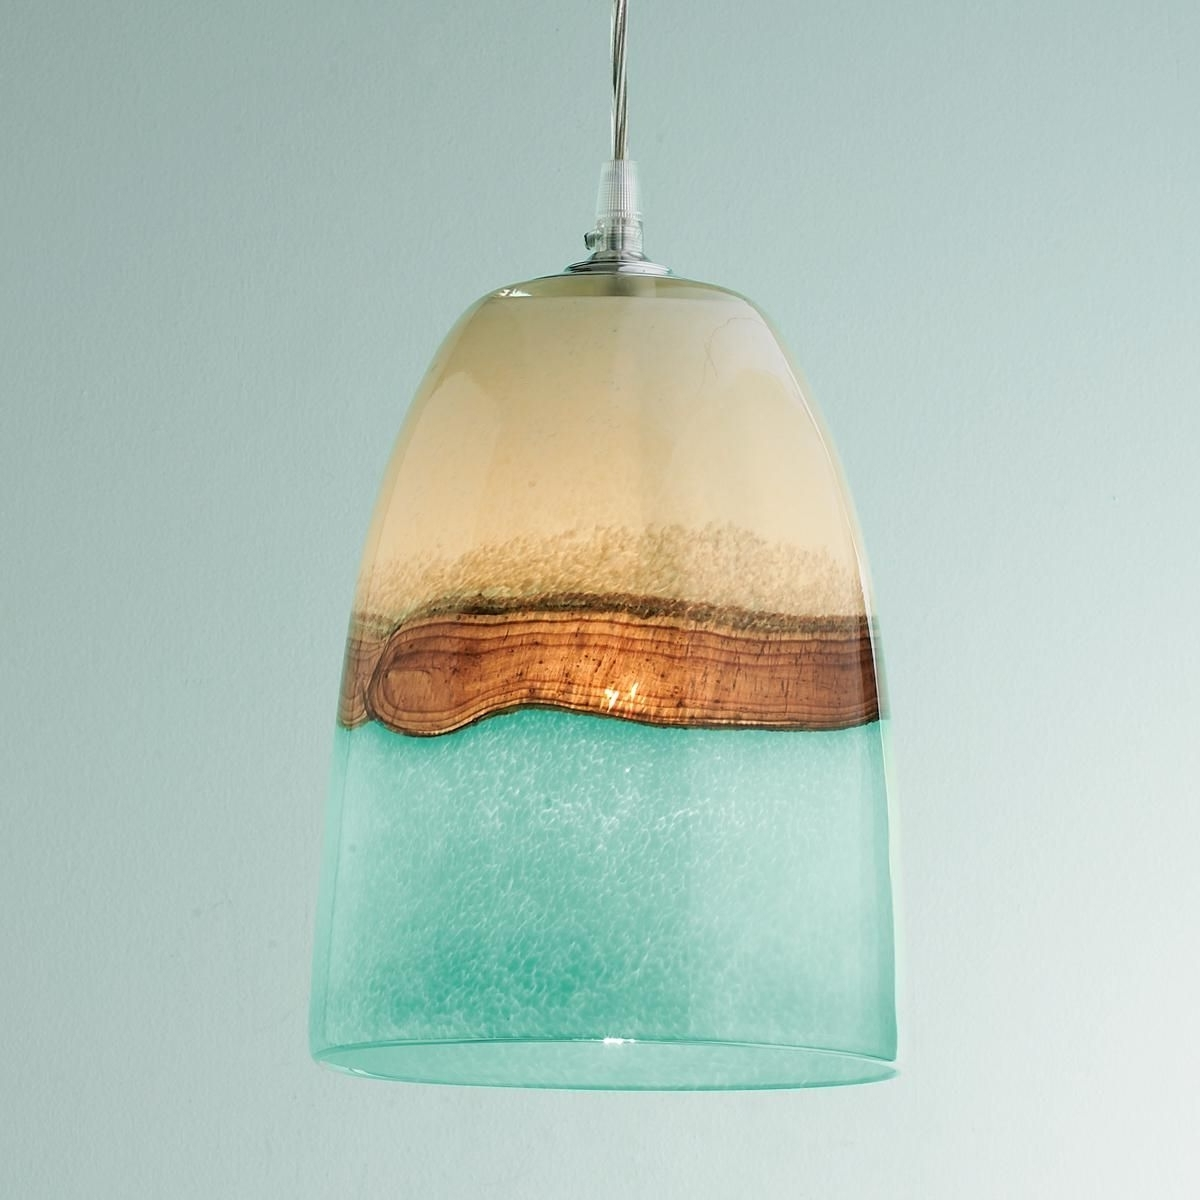 Turquoise Pendant Chandeliers Regarding Latest Strata Art Glass Pendant Light (View 13 of 20)